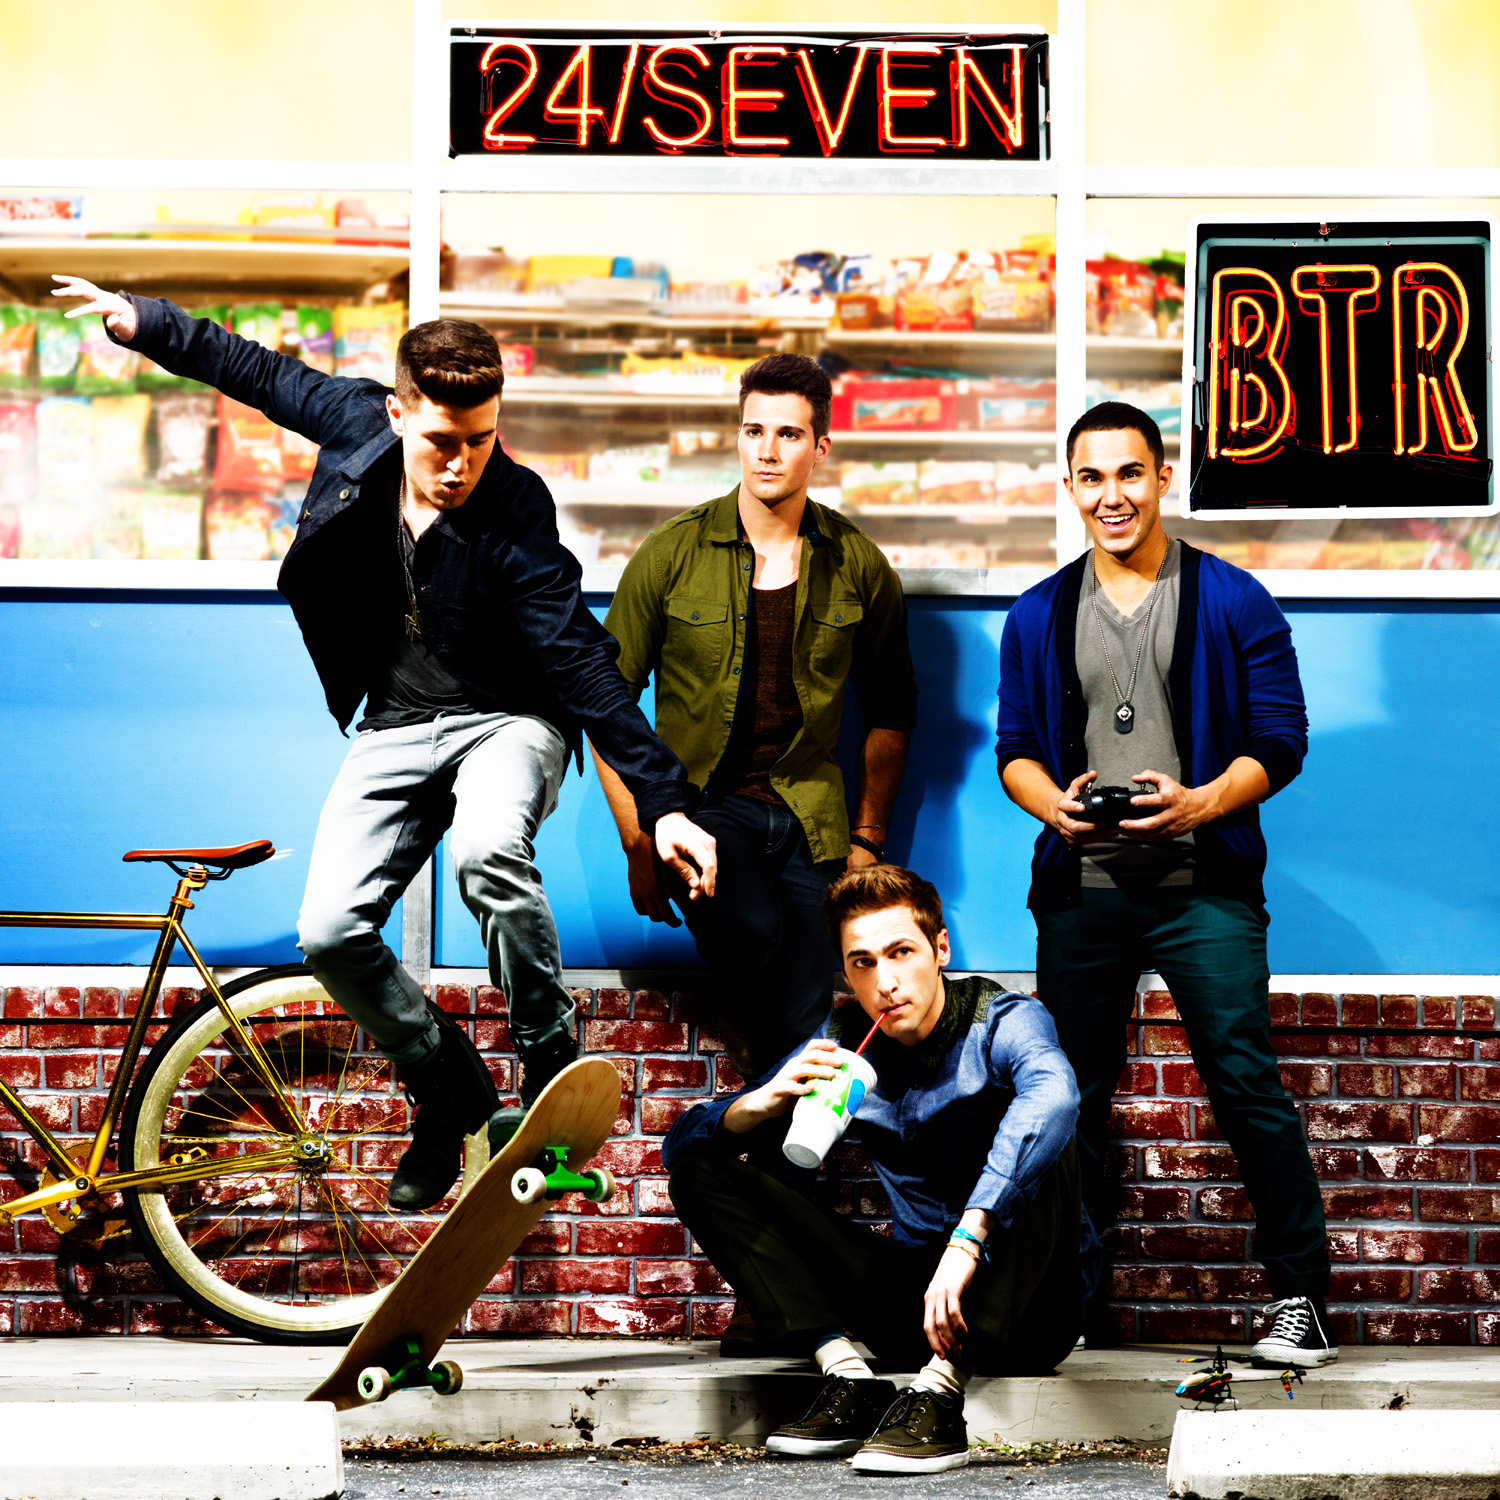 Big-Time-Rush-24_Seven-2013-1500x1500